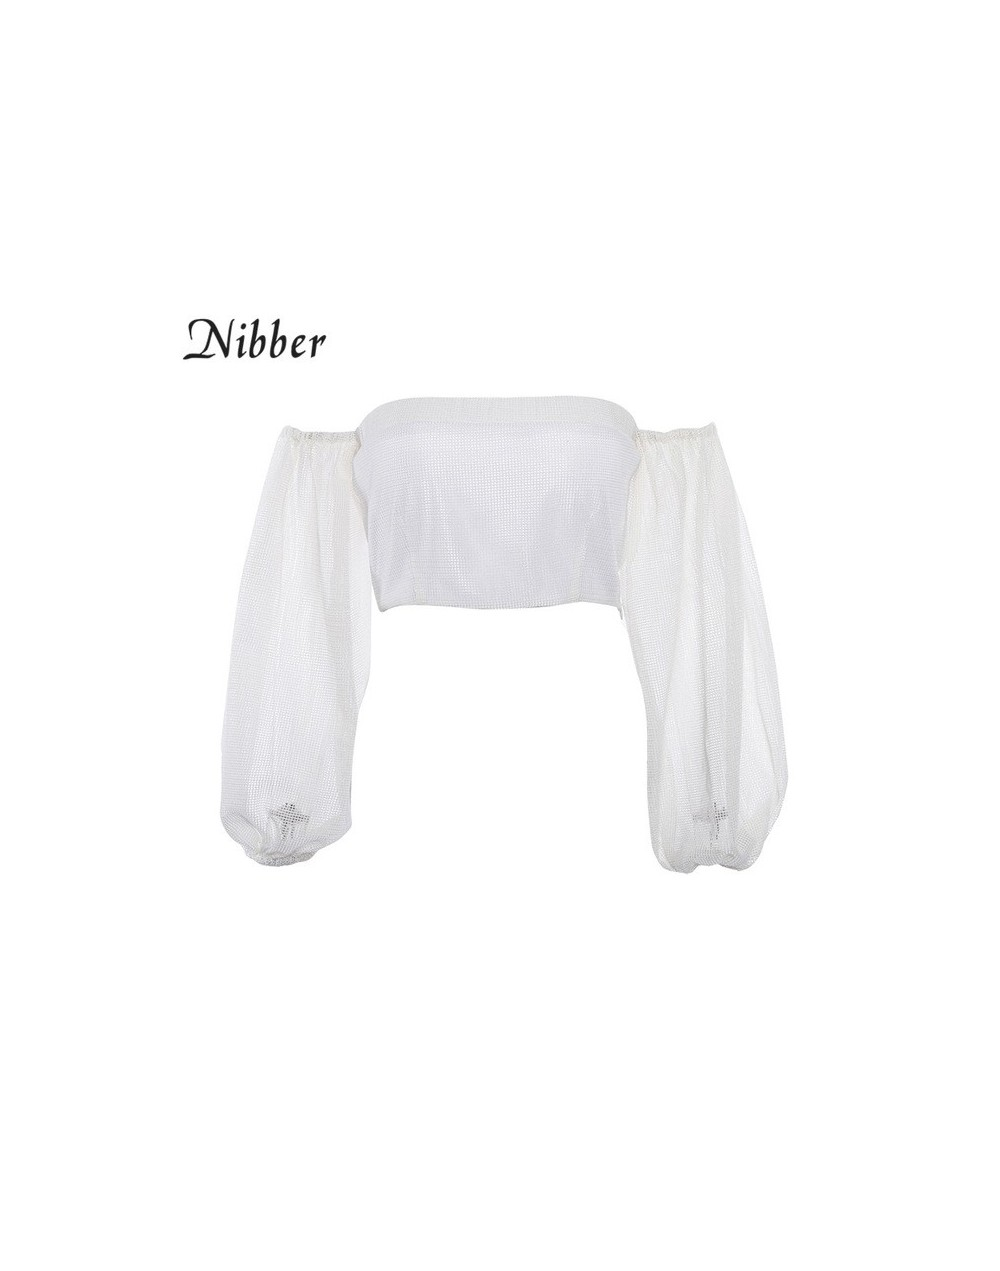 2018 New Fashion White Women T-ShirtSexy Off Shoulder Crop Tops Summer fluffy Sleeve Casual Loose Tops Sexy Street Wear - Wh...